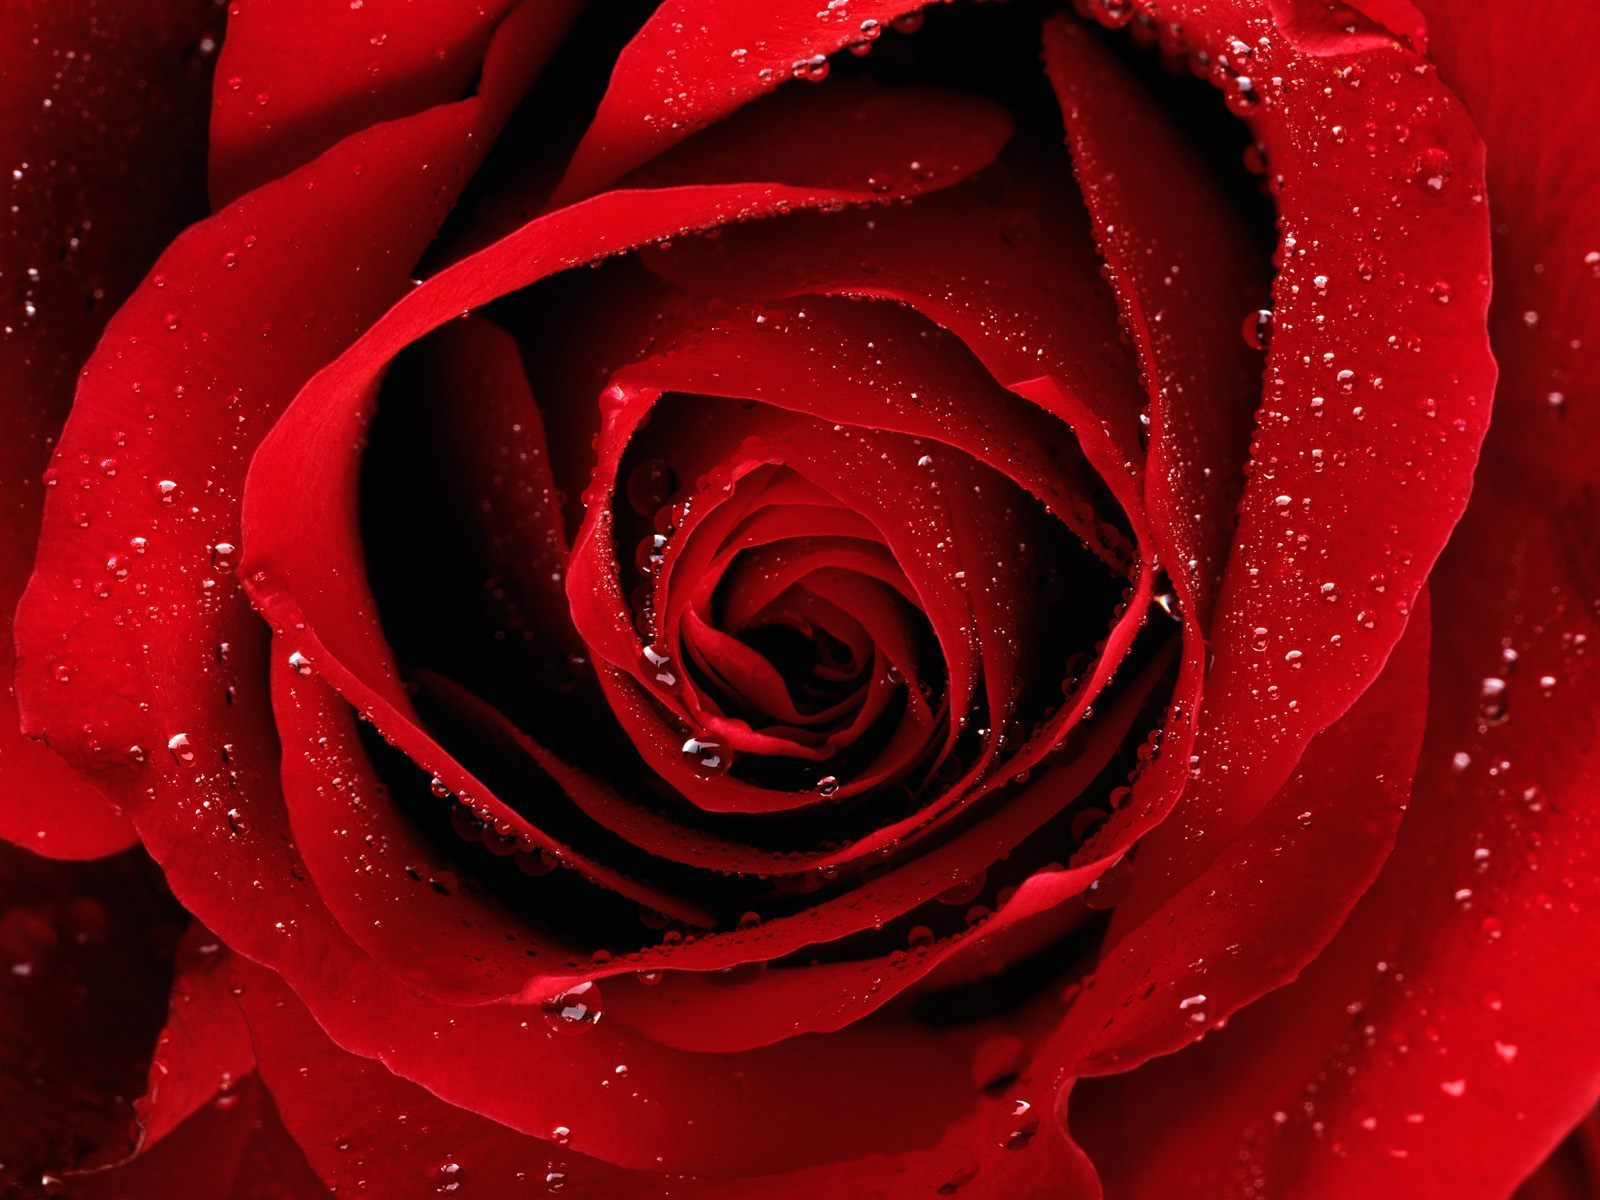 Red Rose Wallpaper - Red Rose Wallpaper